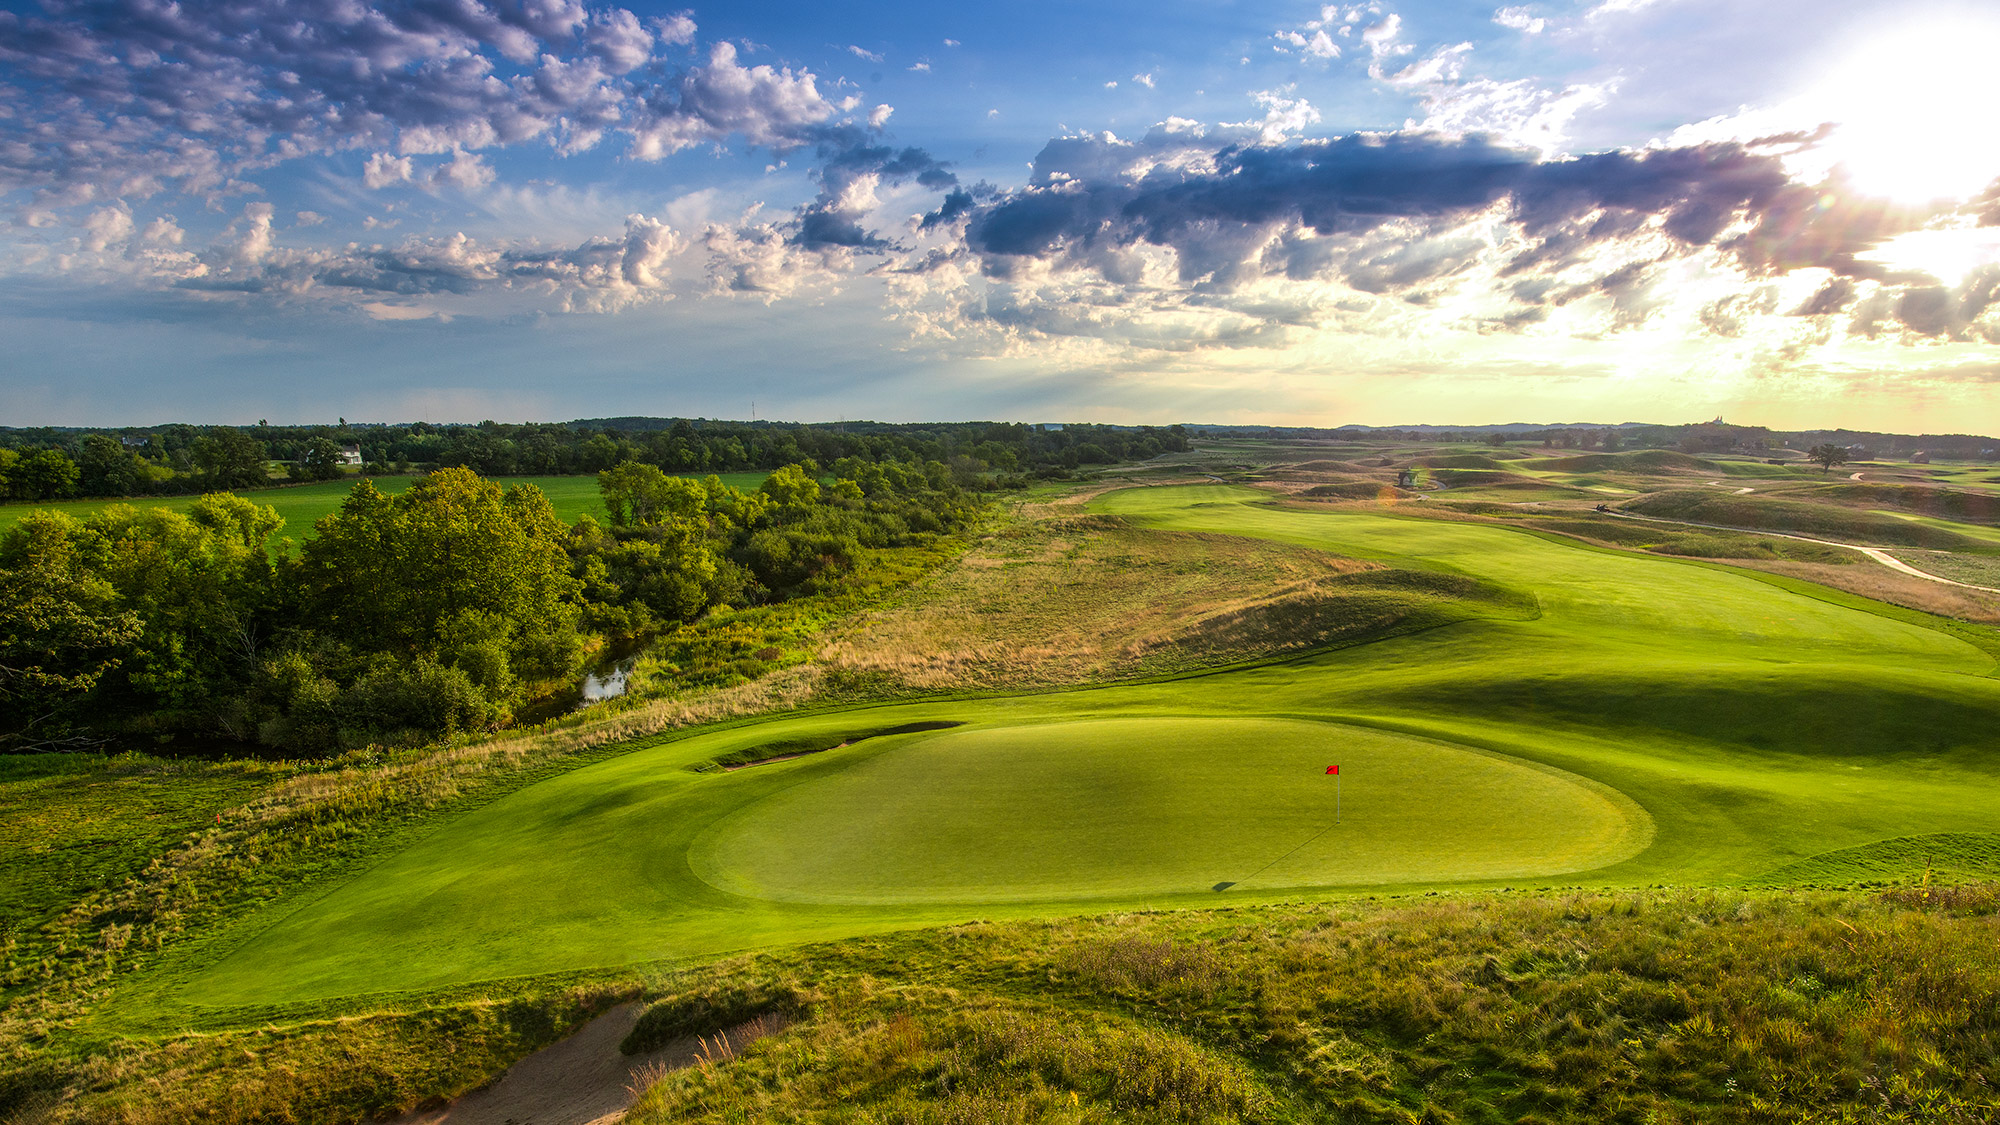 In June, the U.S. Open pays its first visit to this public-access, 11-year-old Michael Hurdzan- Dana Fry design (with Ron Whitten consulting). Located 35 miles northwest of Milwaukee, the course occupies a massive, topsy-turvy spread of ridges, dunes and fescue grasses, lending a linksy, Ireland-in-the-Heartland ambience. Of course, no Emerald Isle track stretches to 7,812 yards, as this one does.